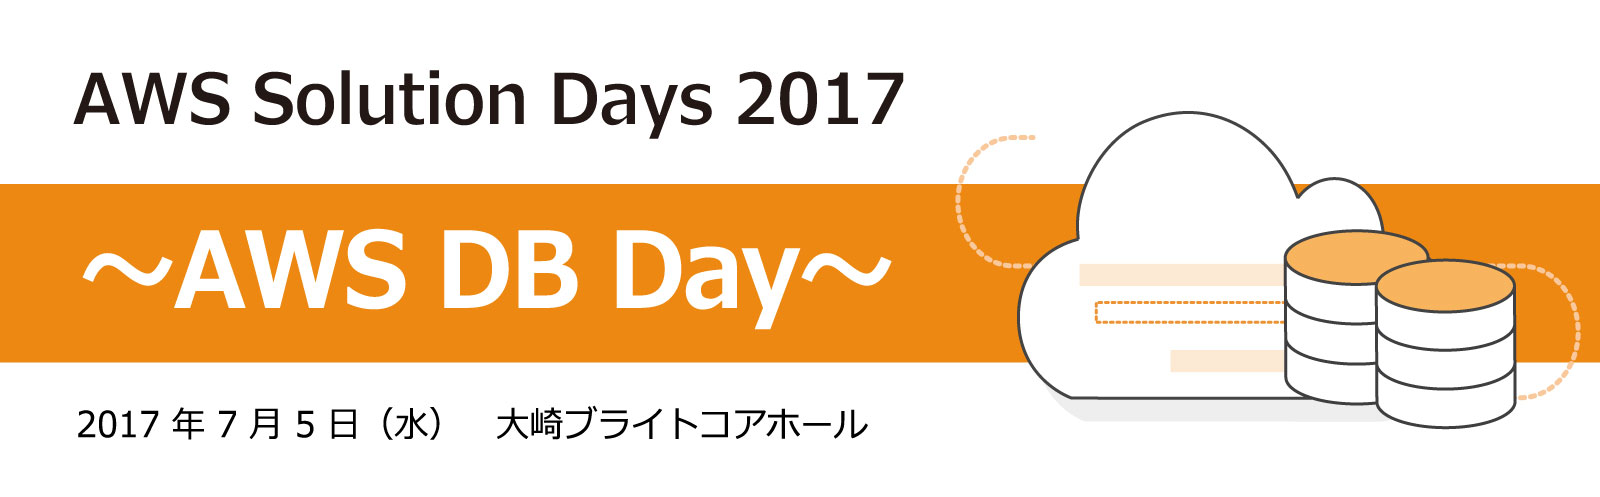 main_solutionday2017_DB